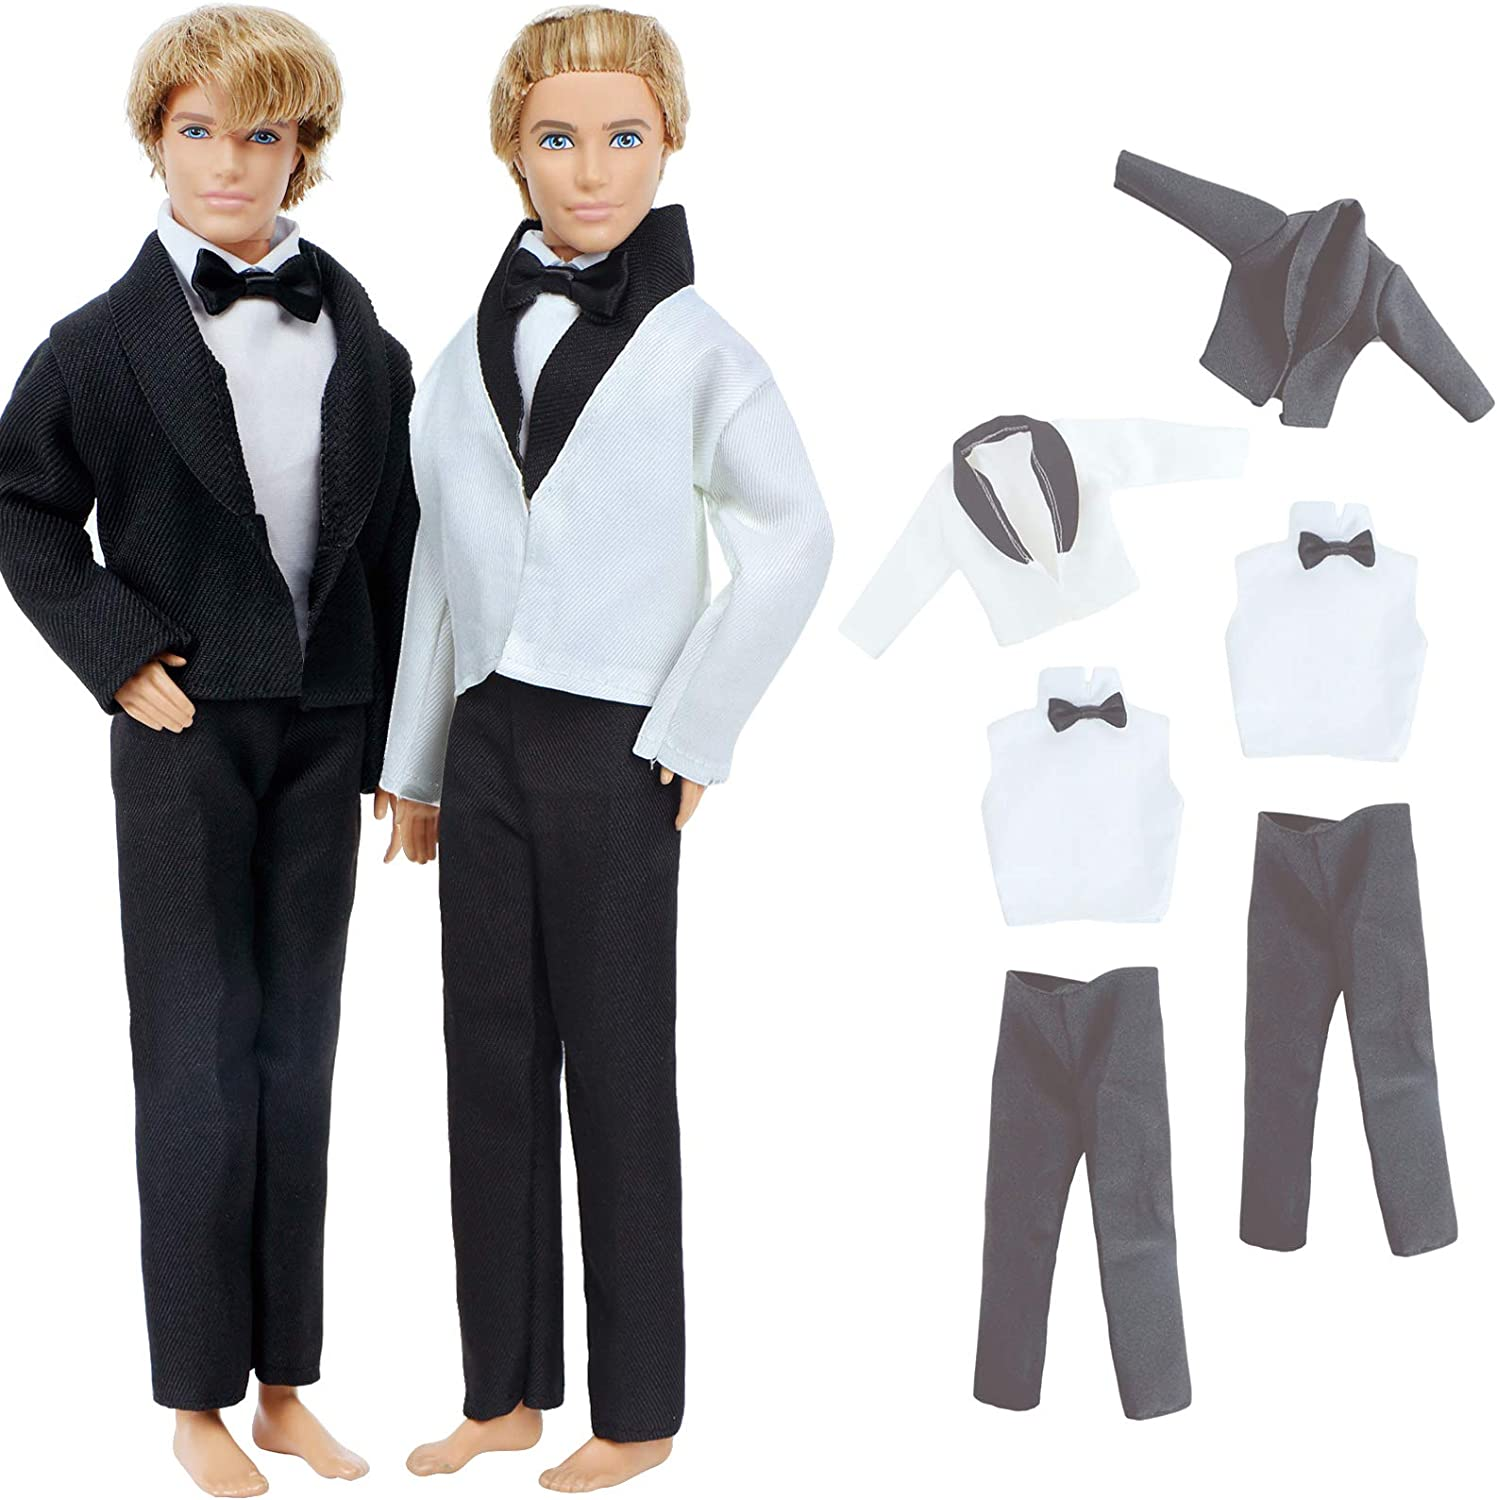 BJDBUS 2 Sets Formal Office Suits Including Black Coat , White Coat , White Shirt with Bow-Knot , Black Trousers Groom Wedding Tuxedo for 11.5 Inch Boy Doll Clothes